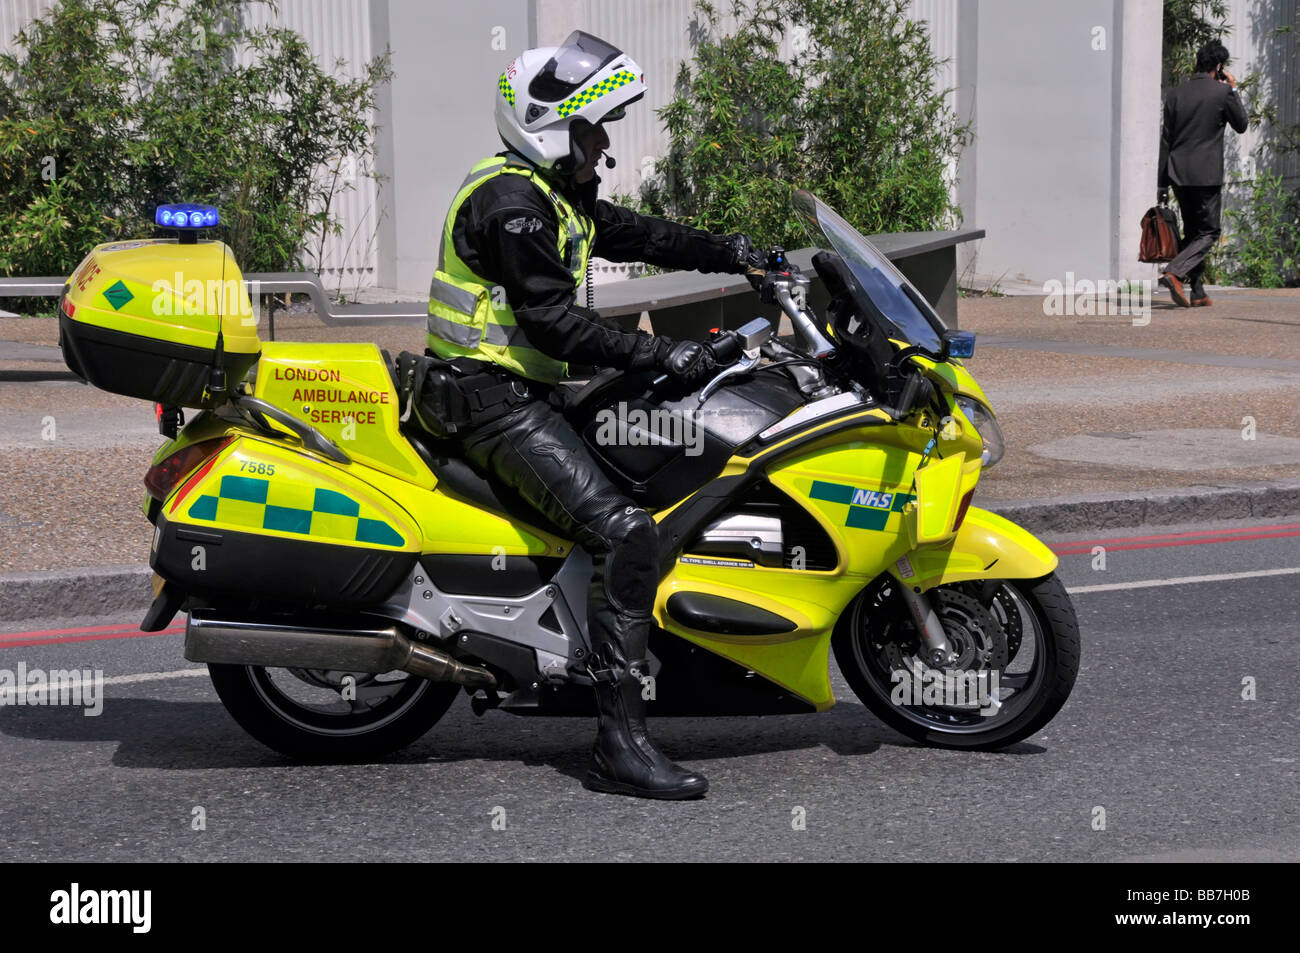 London Ambulance Service paramedic on motorbike - Stock Image